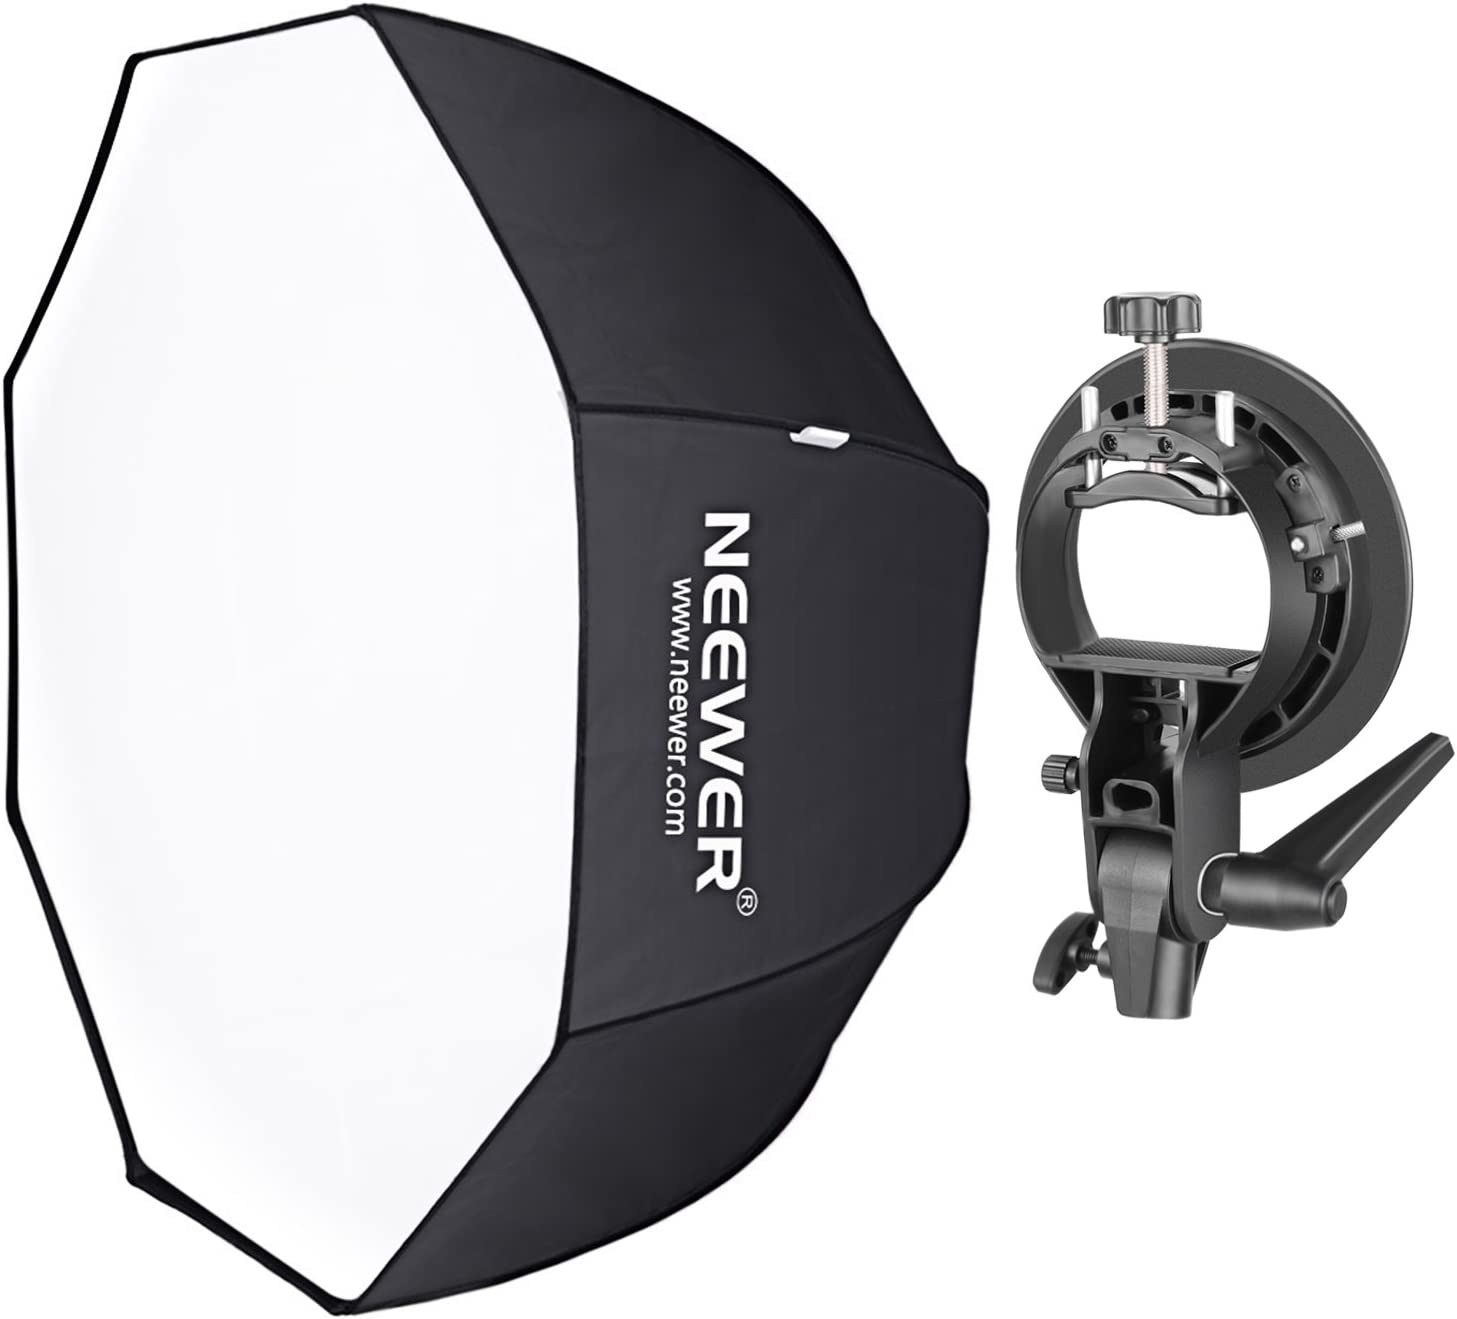 Neewer 24 x 24-Inch Speedlite Studio Flash and Umbrella Softbox with Carrying Bag for Portrait//Product Photography